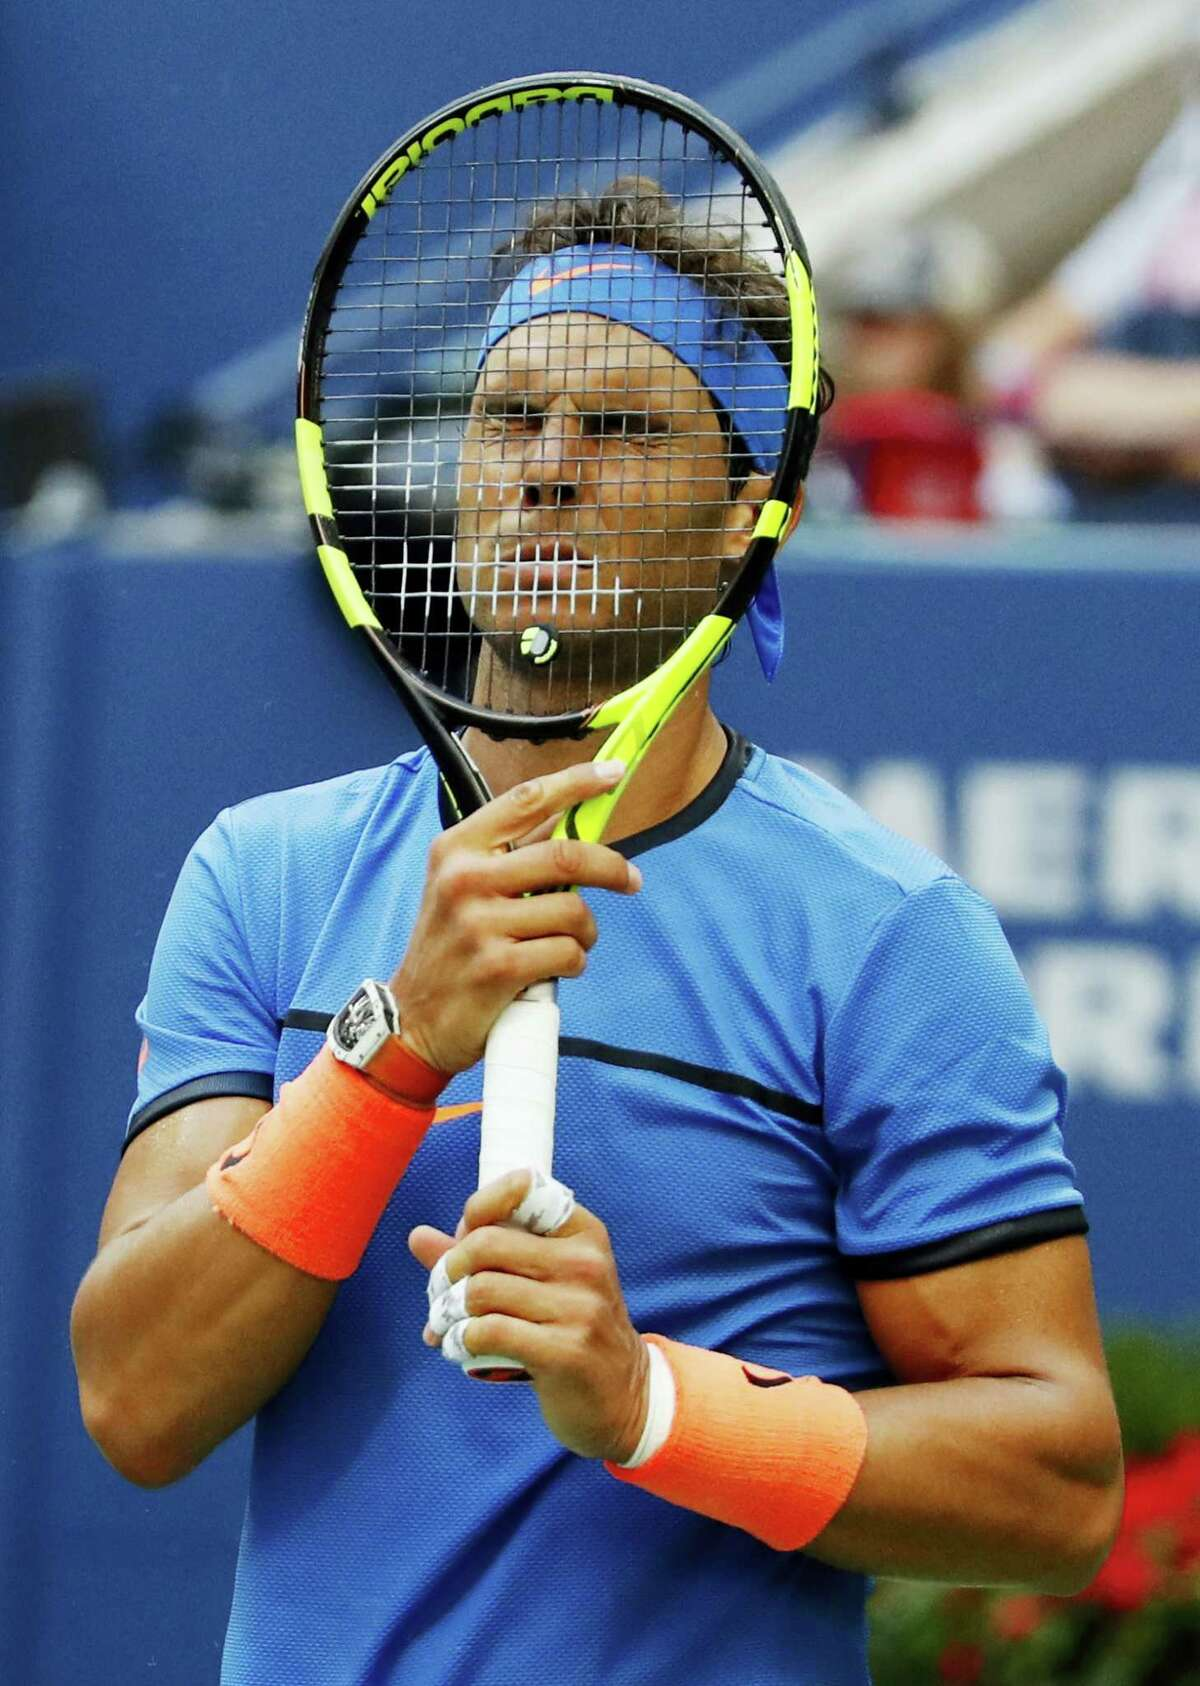 Rafael Nadal puts his racket to his face during his match against Lucas Pouille at the U.S. Open on Sunday.